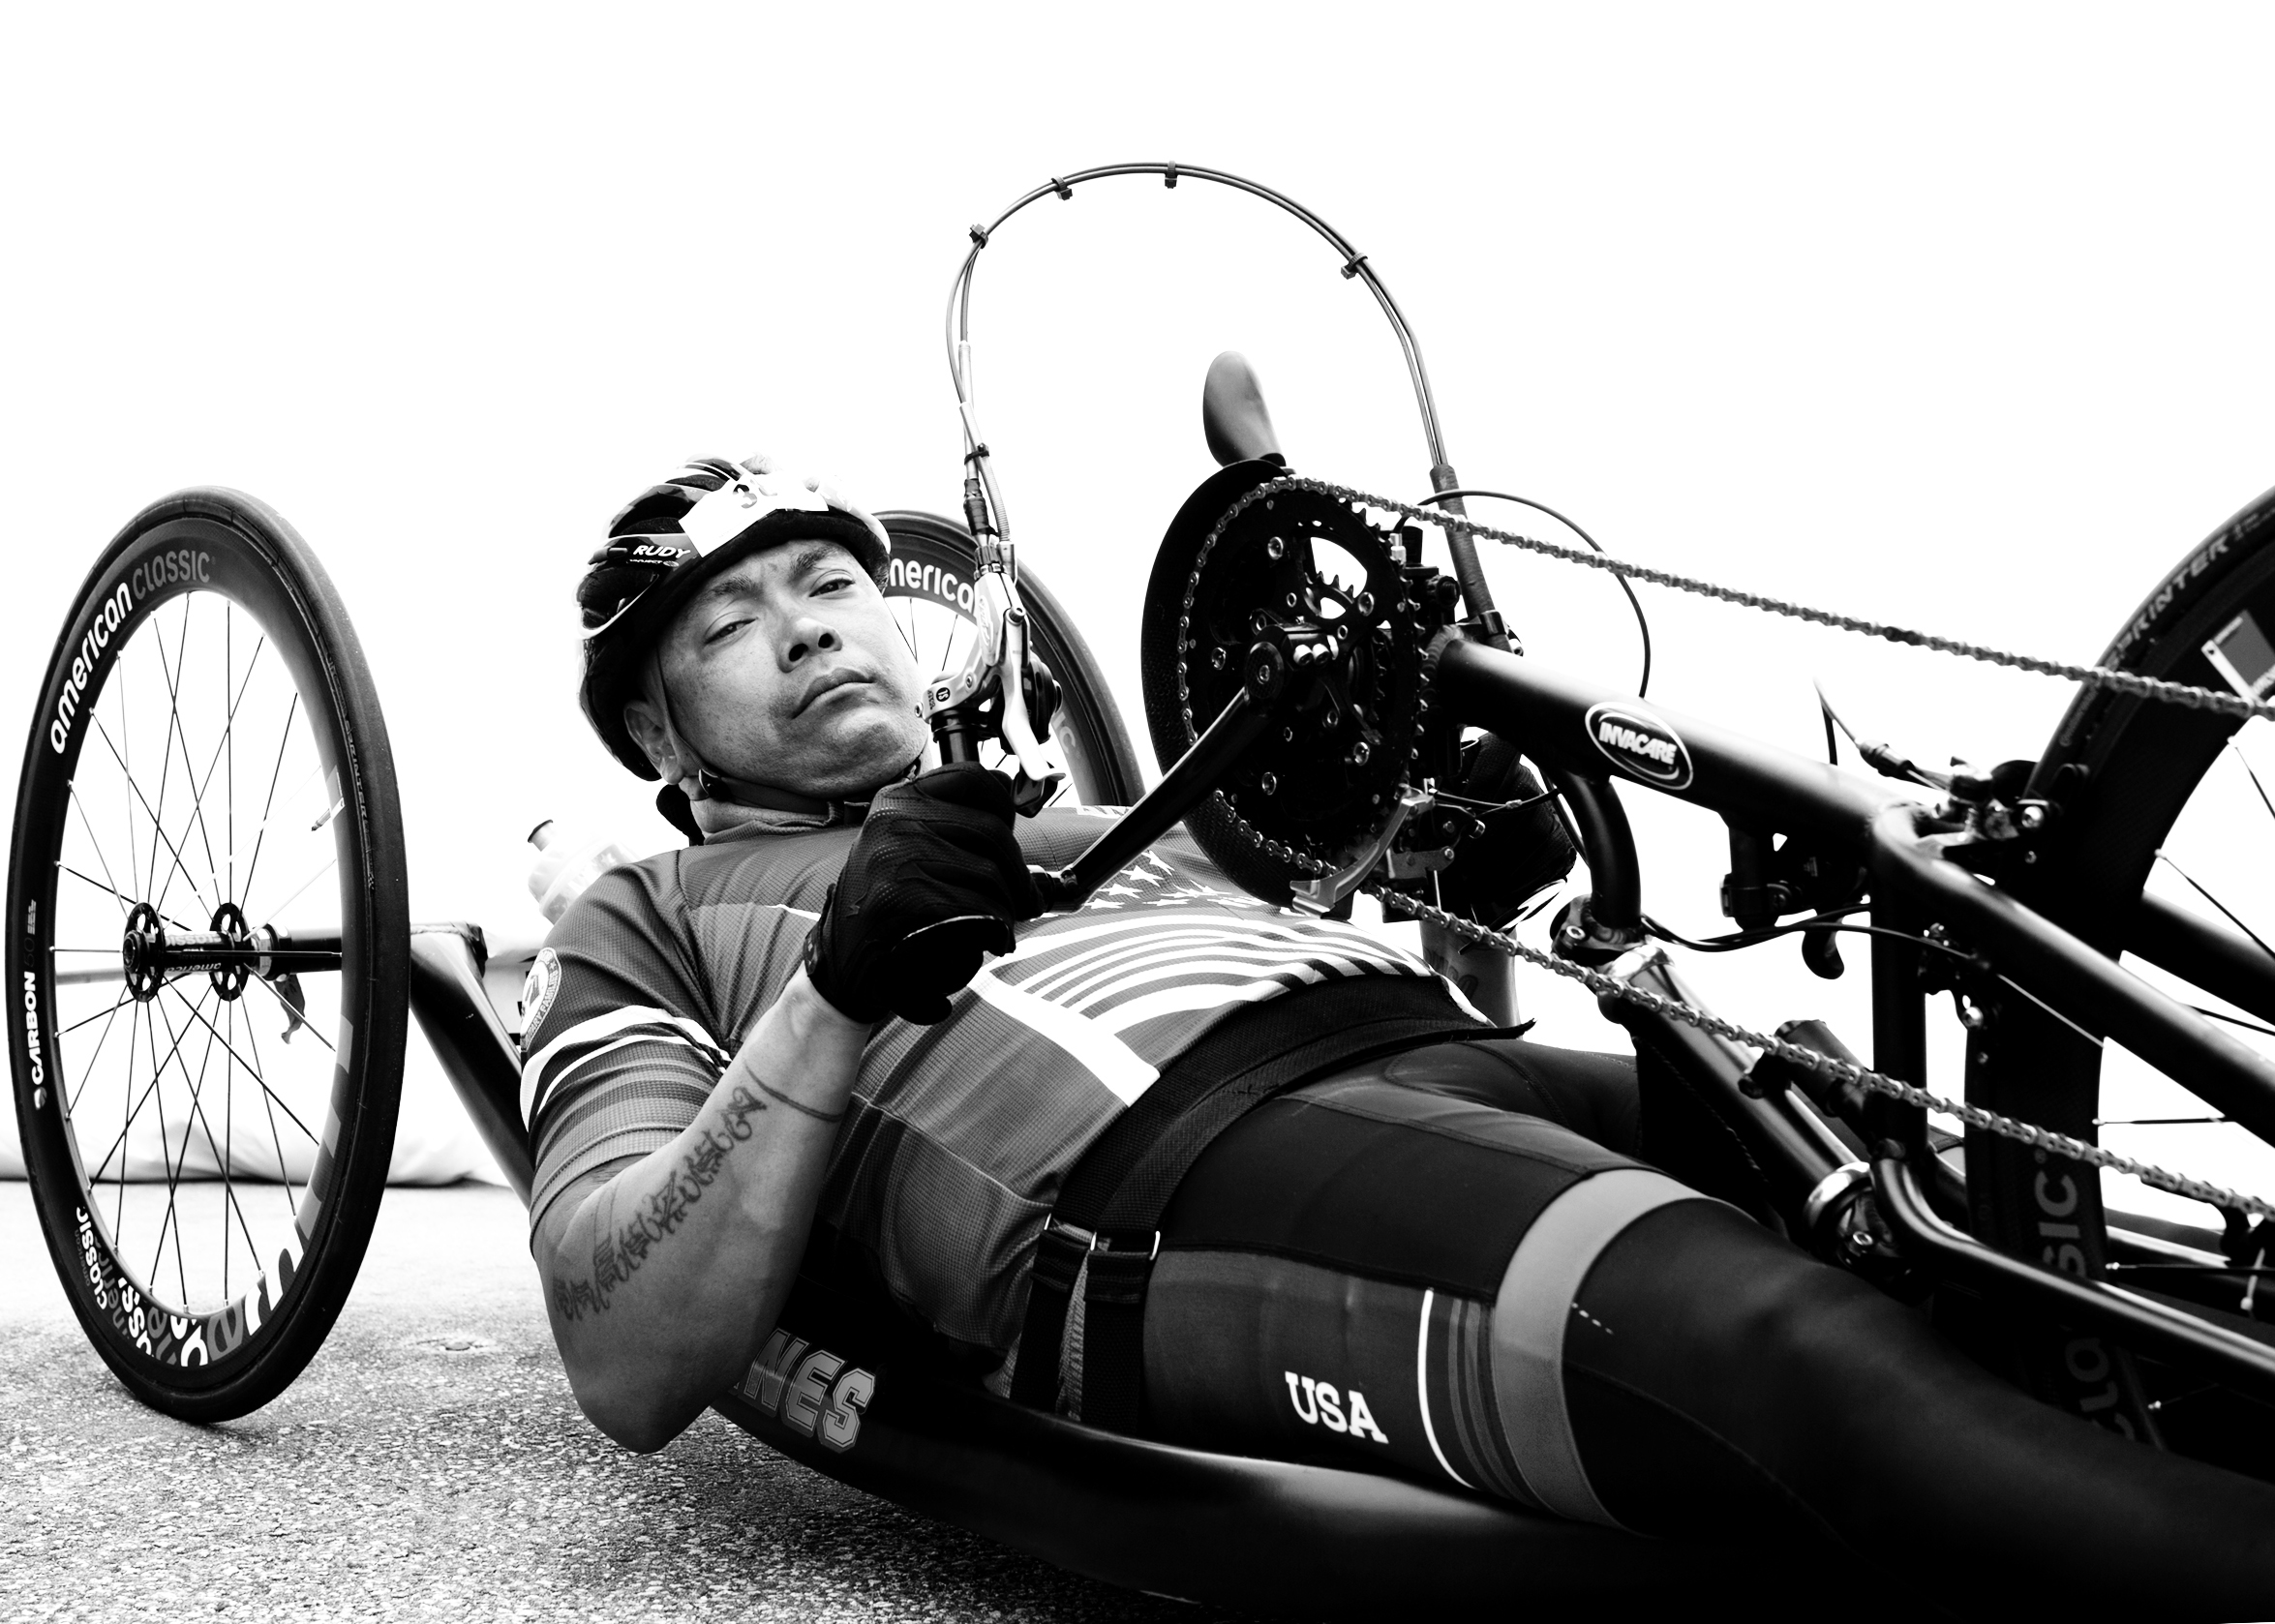 Ronnie Jimenez, USA, competed in cycling